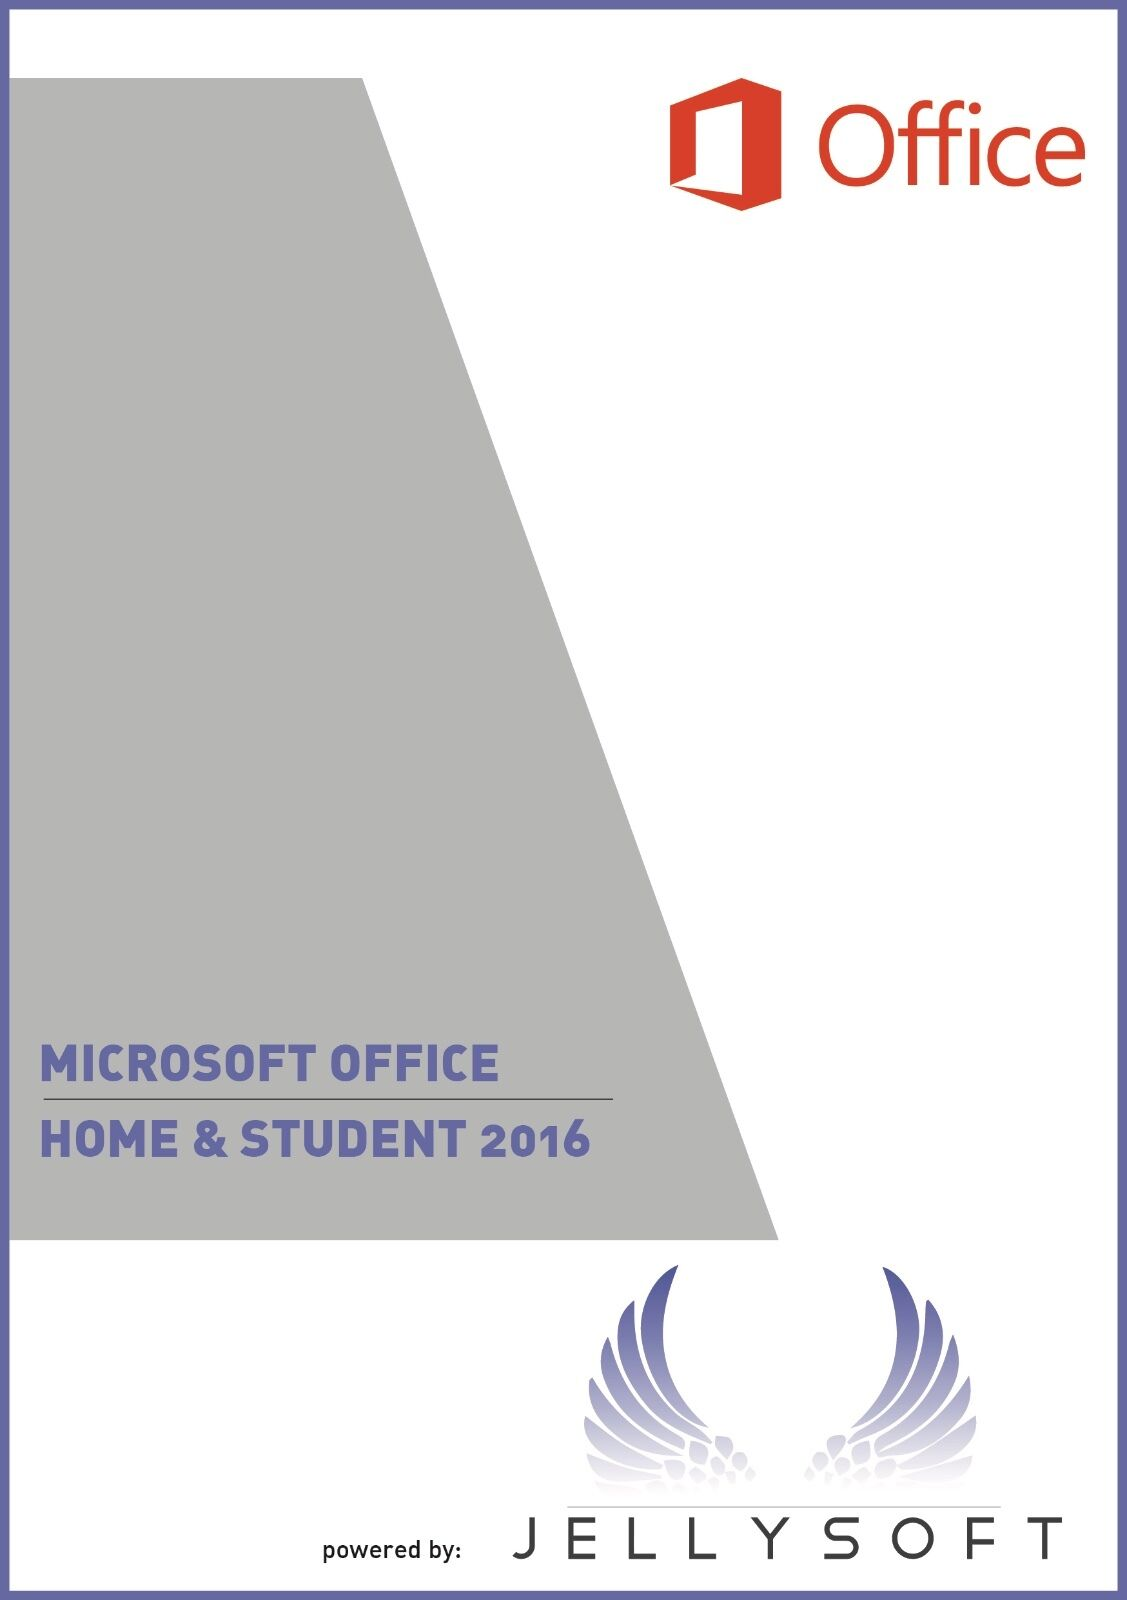 Microsoft Office 2016 Home And Student Paypal